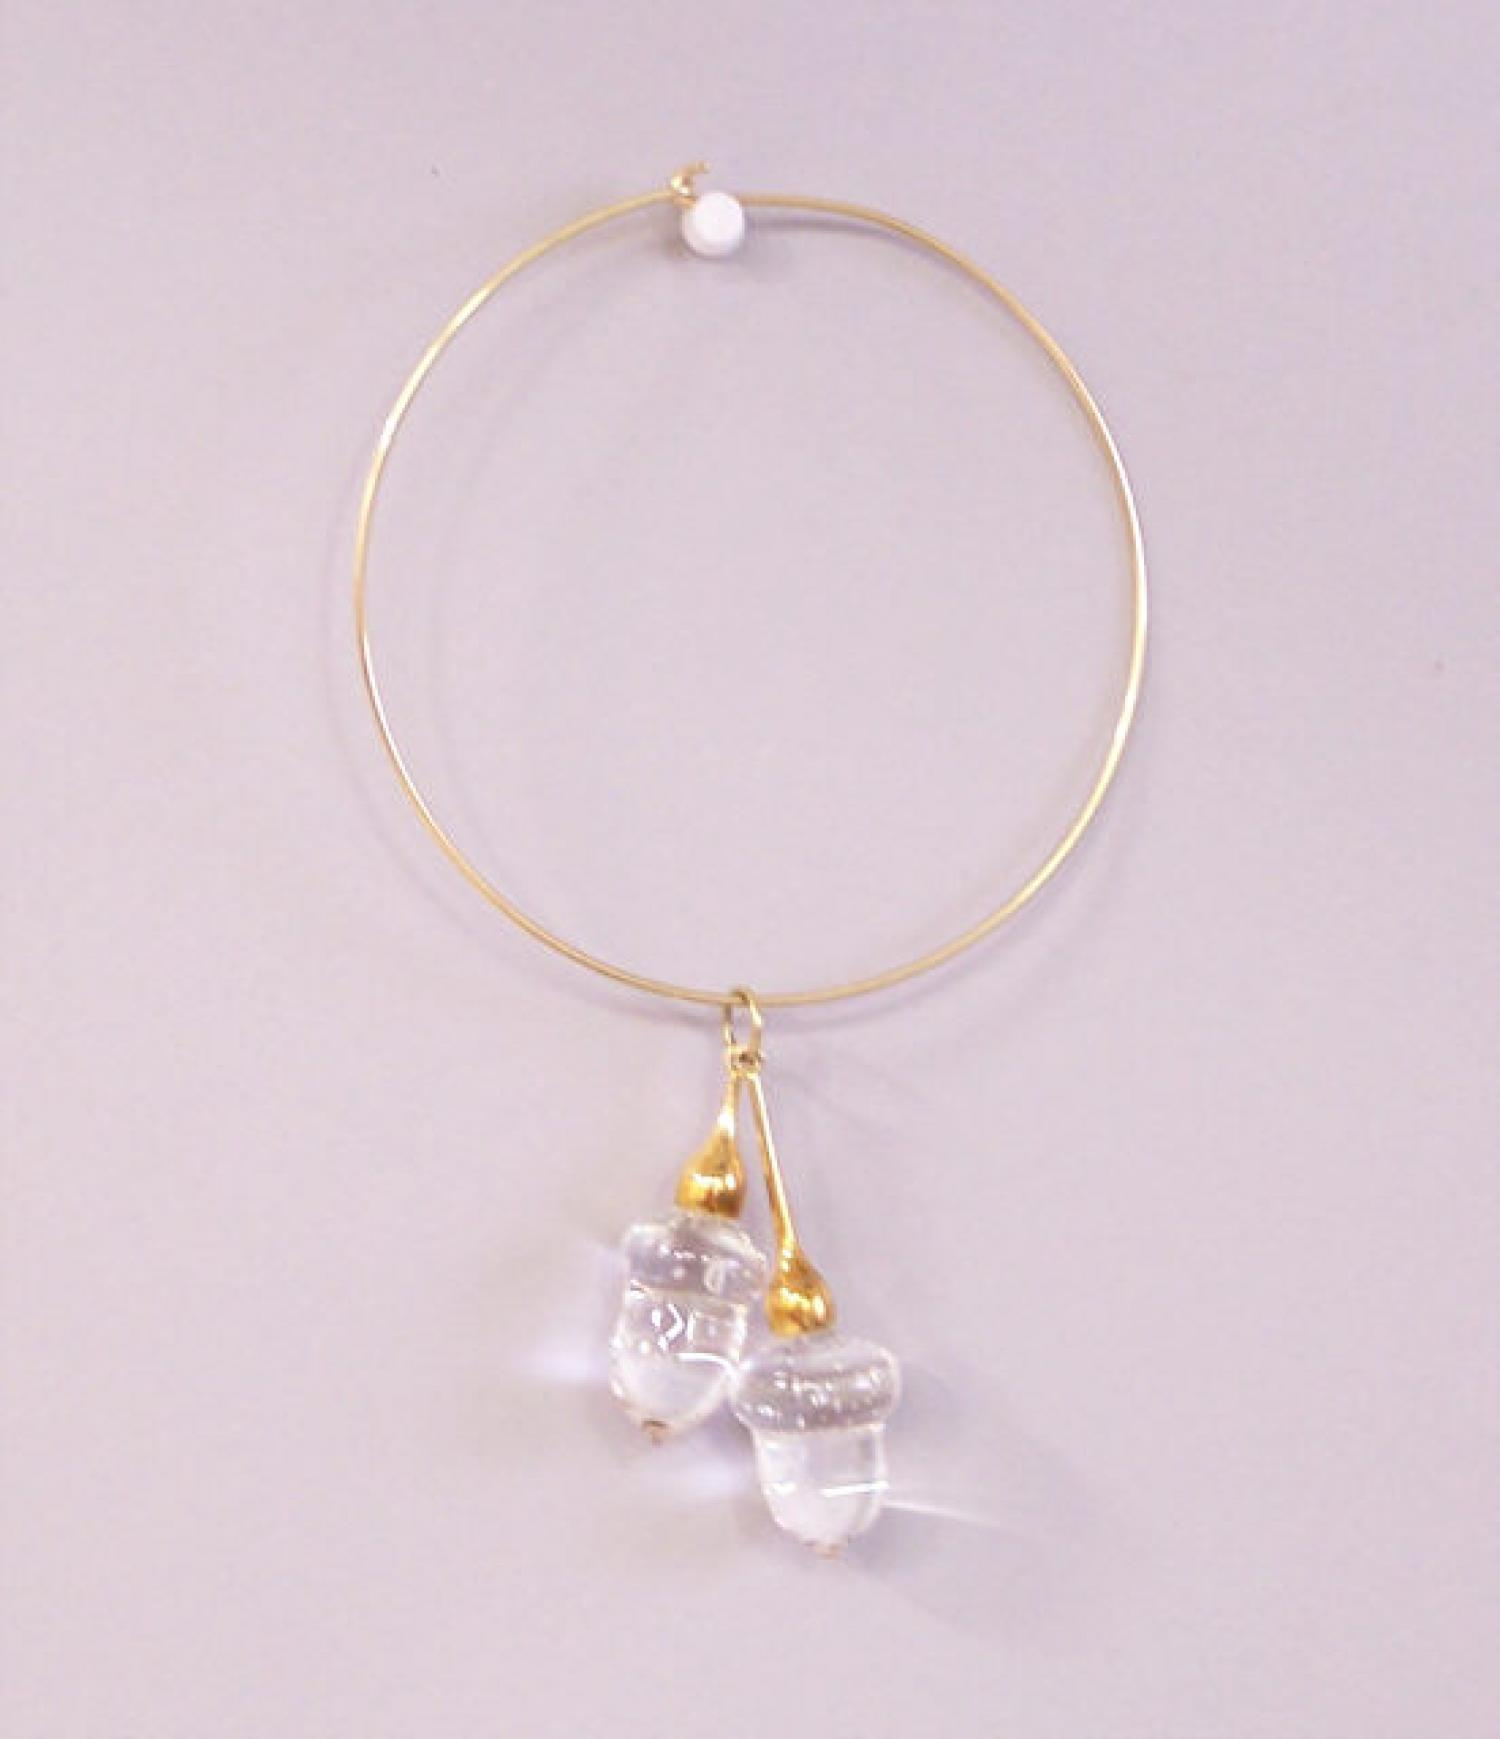 Steuben cut crystal acorn and gold necklace